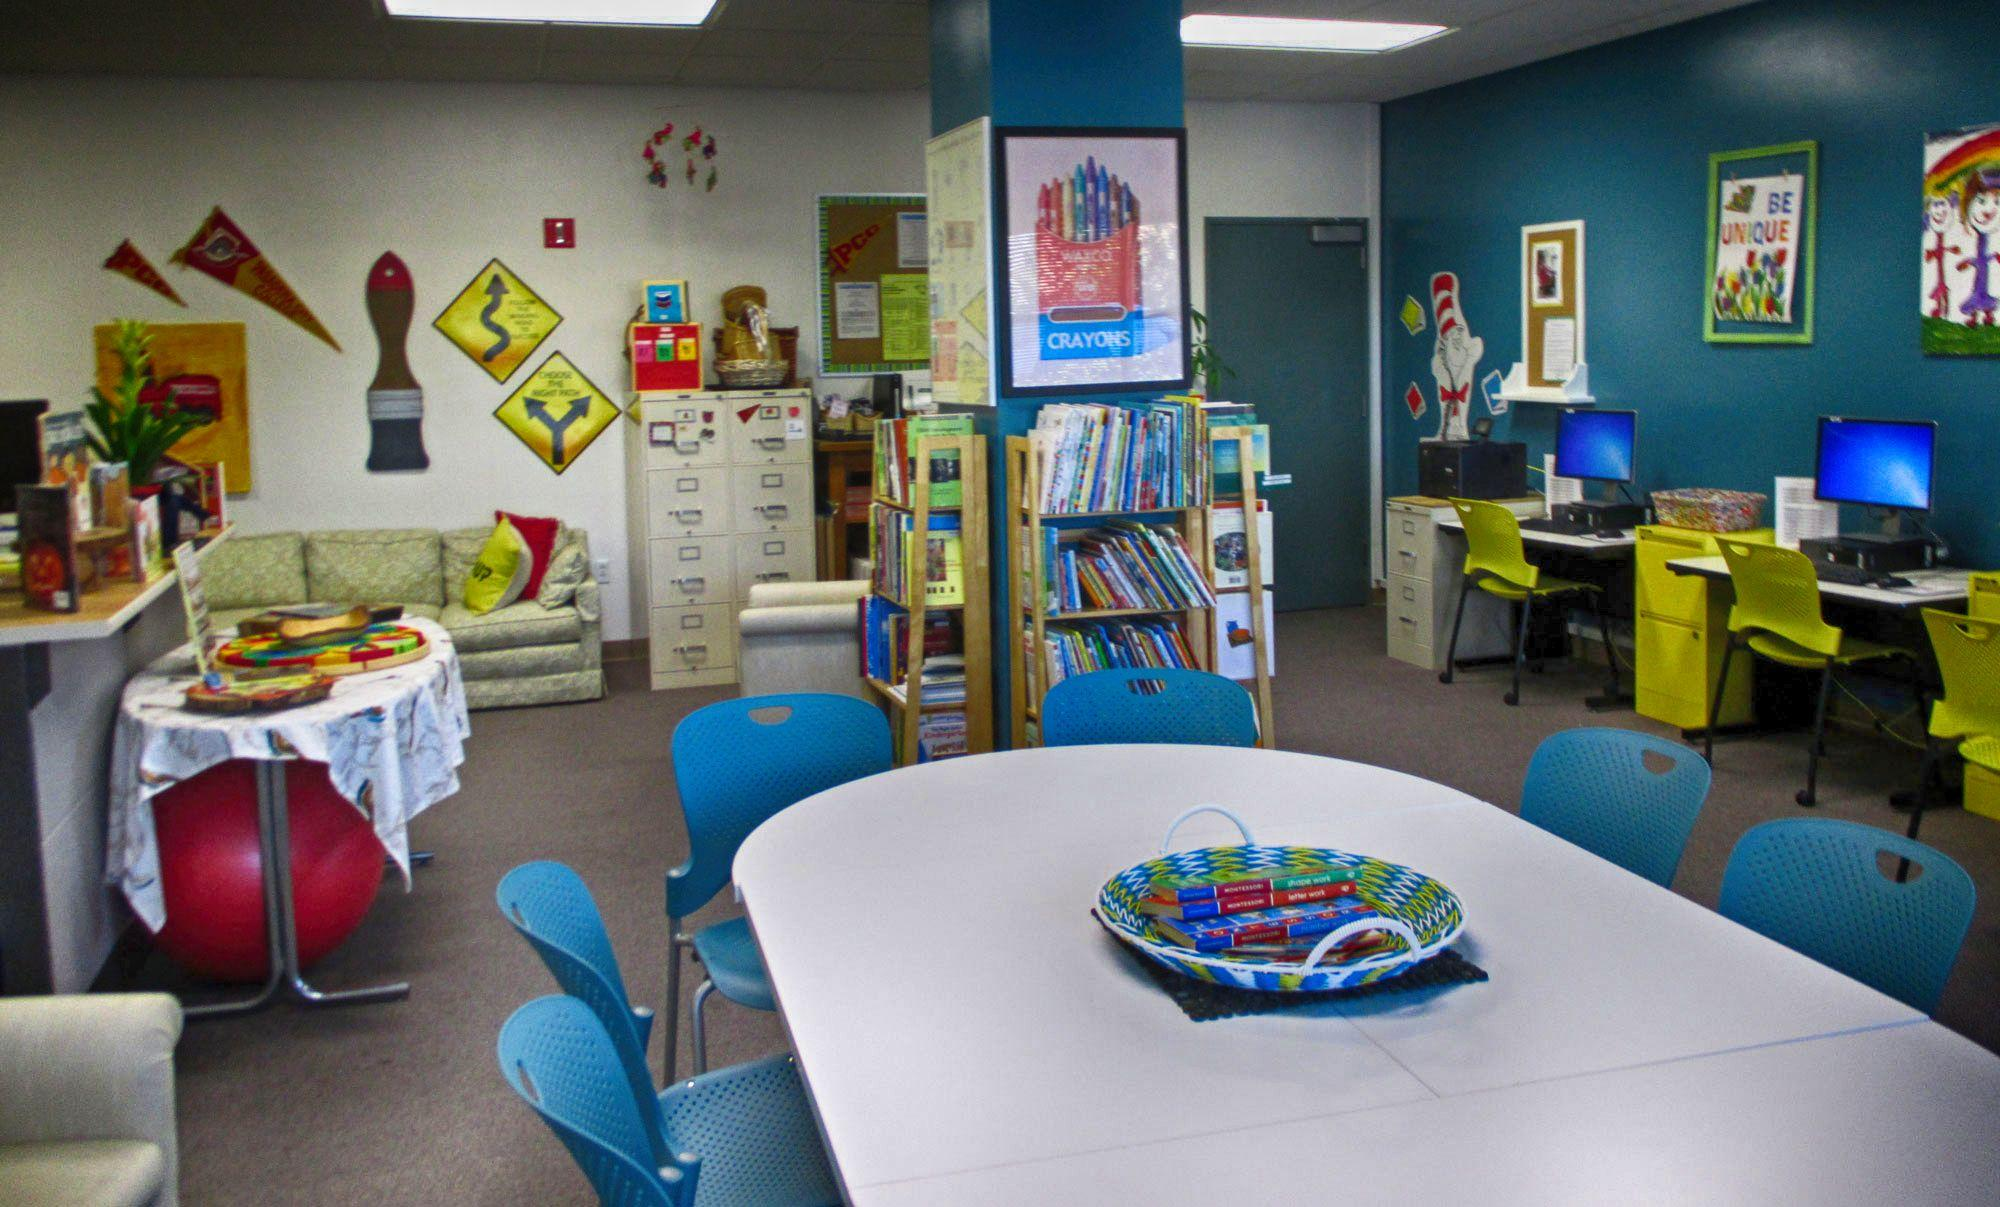 Hixon Teacher Preparation Resource Center